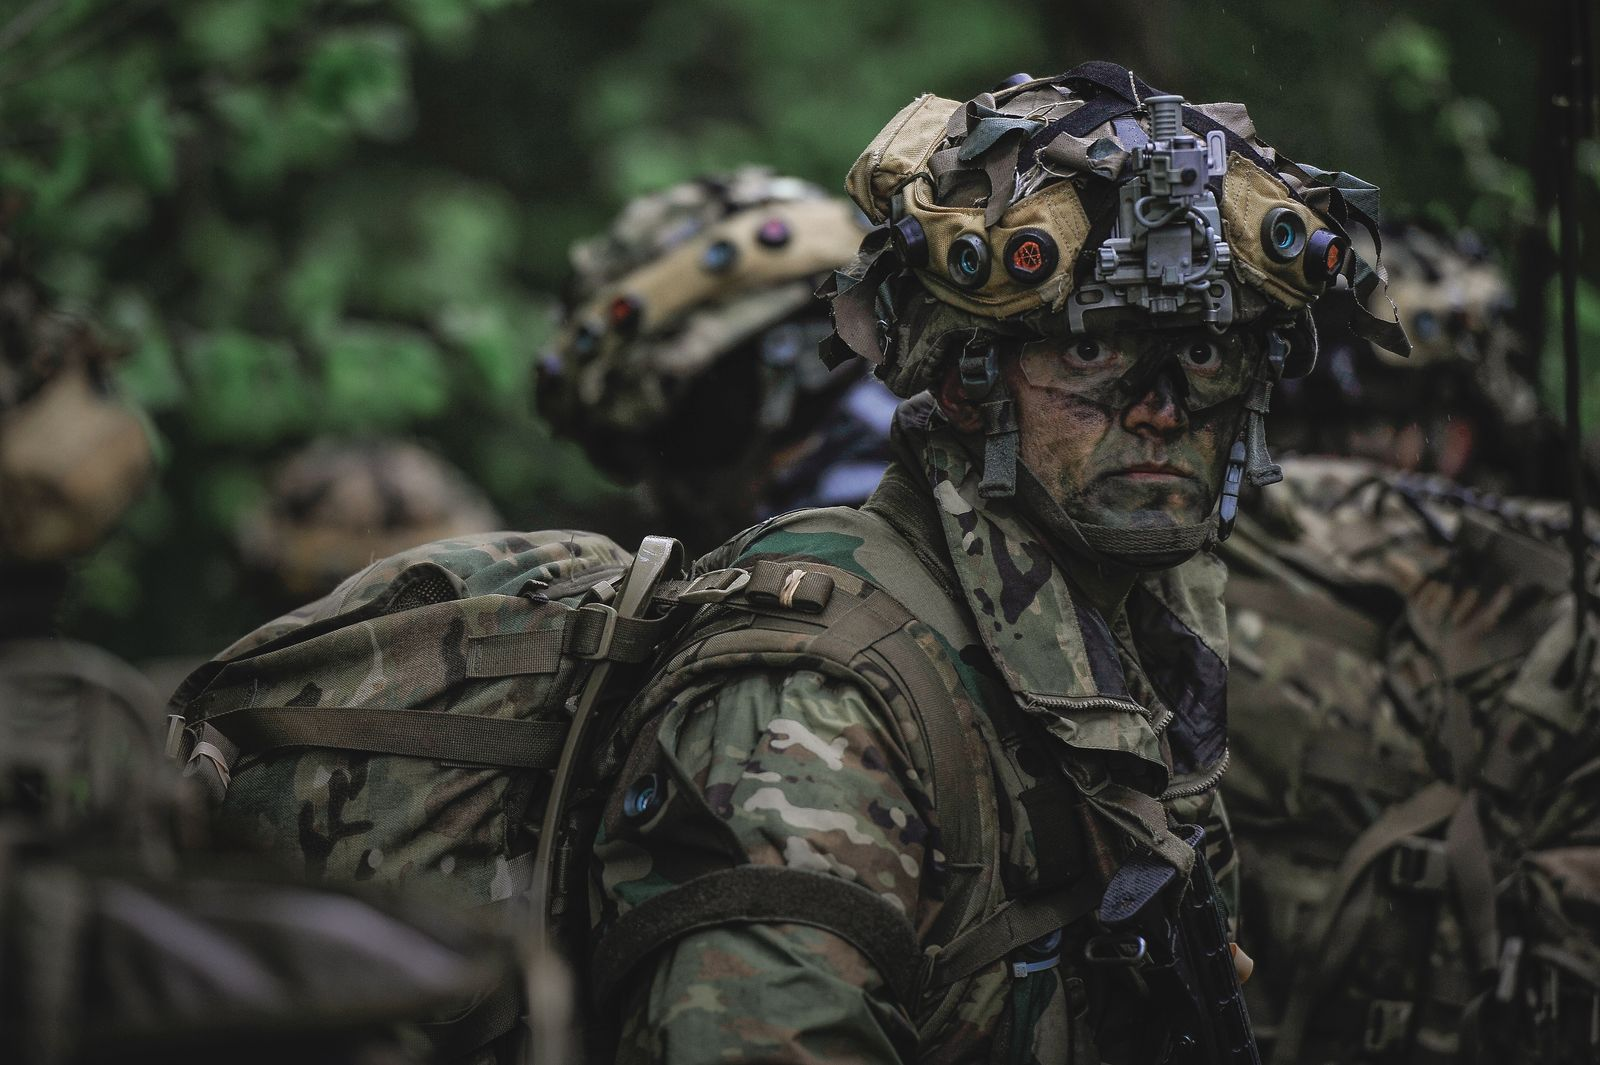 Secrets Revealed: How the Delta Force Came to Dominate